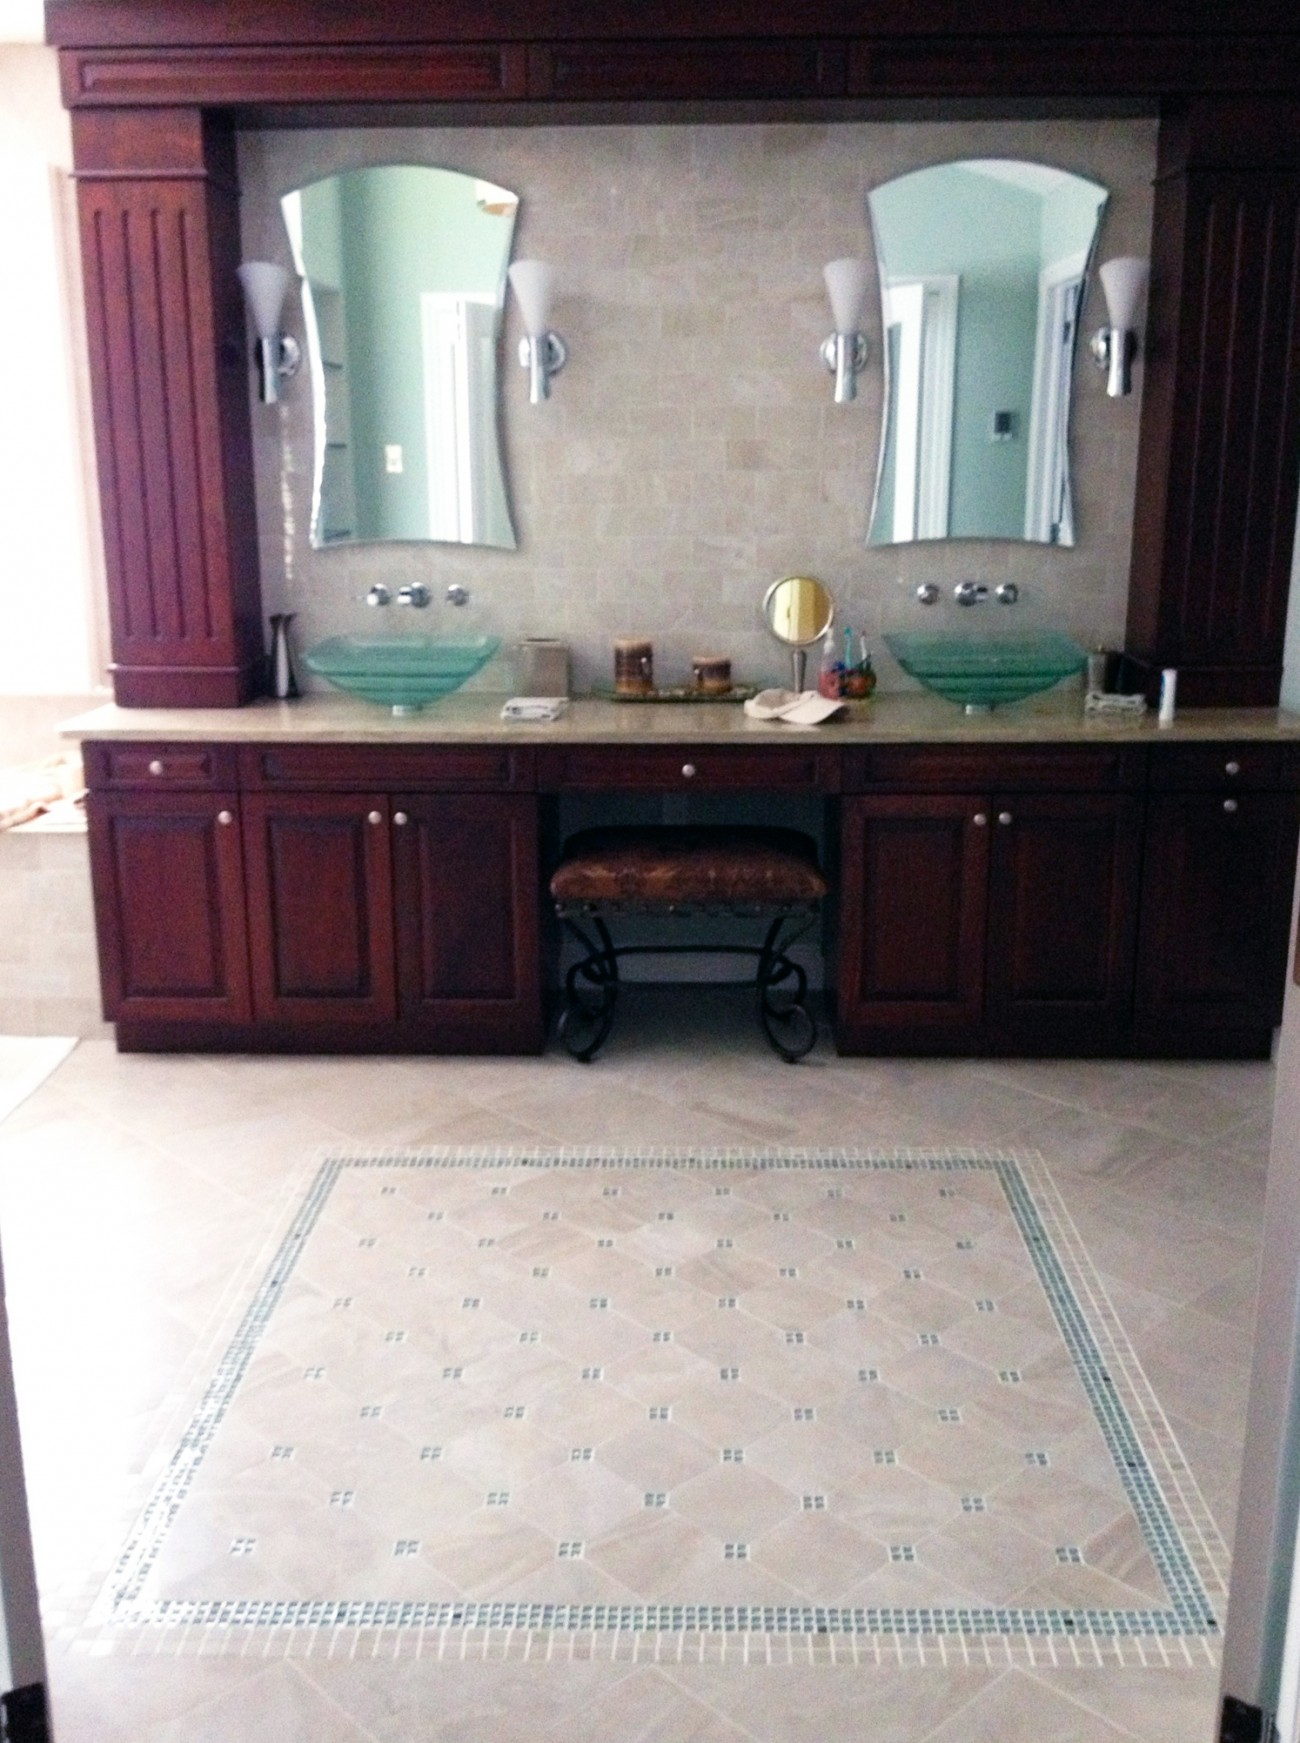 Bathroom Remodel Contractors bathroom remodeling contractors | briarcliff manor | new york